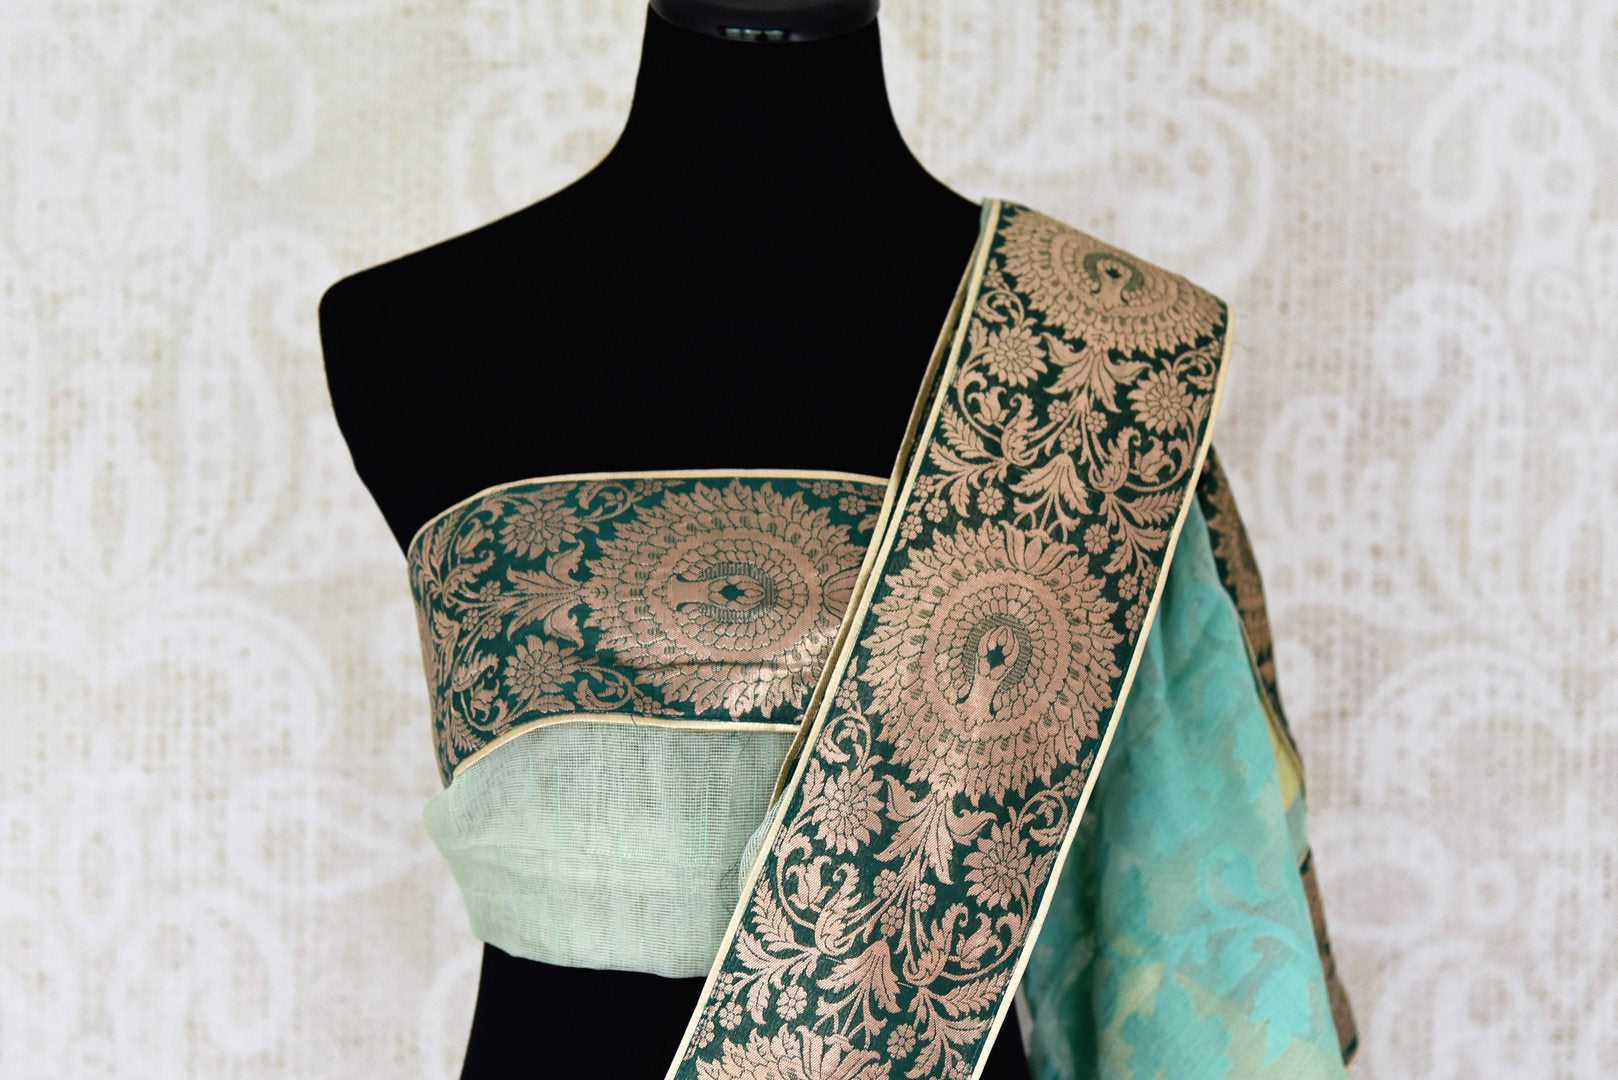 Buy sea green tissue handloom saree online in USA with Banarasi border from Pure Elegance online store. Visit our exclusive Indian clothing store in USA and get floored by a range of exquisite pure handloom sarees, Banarasi sarees, silk sarees, Indian jewelry and much more to complete your ethnic look.-blouse pallu